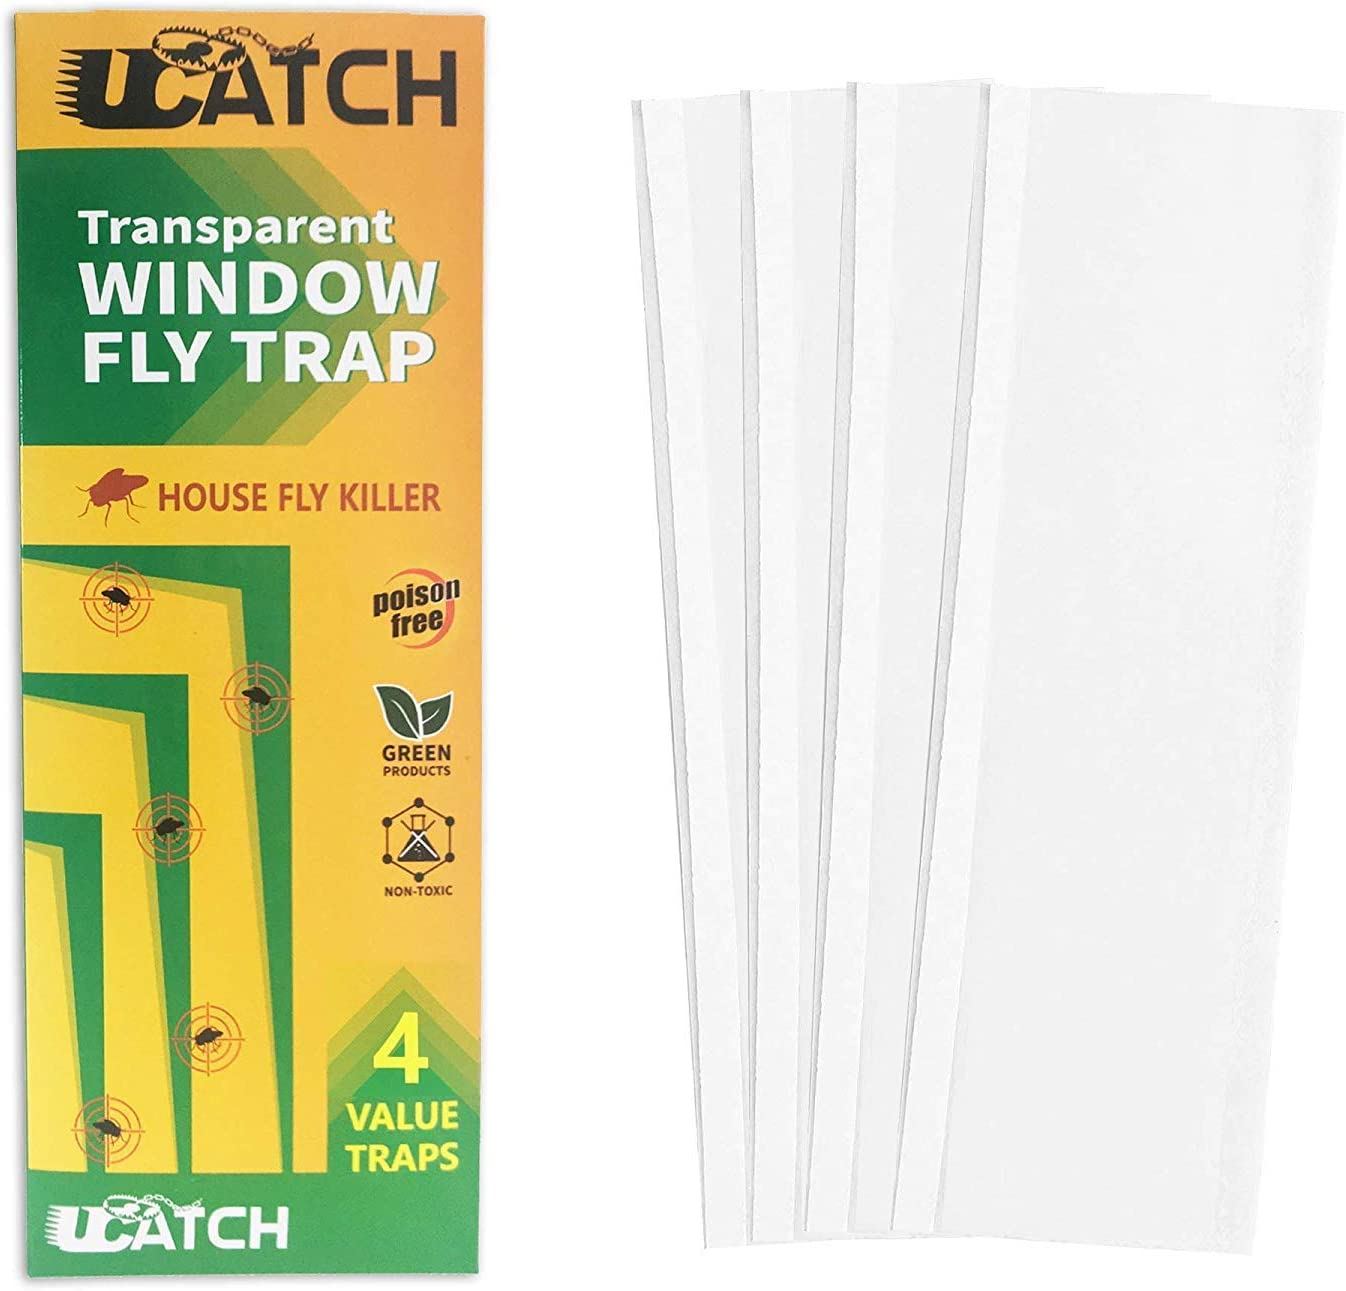 4 Transparent Window Fly Traps. Catches House Flies, Moths, Gnats, Spiders, Bugs. Green, Eco-Friendly See Through Paper with NO Poison. Peel Off Glue Tape. Place in Window to Quickly Catch Flies